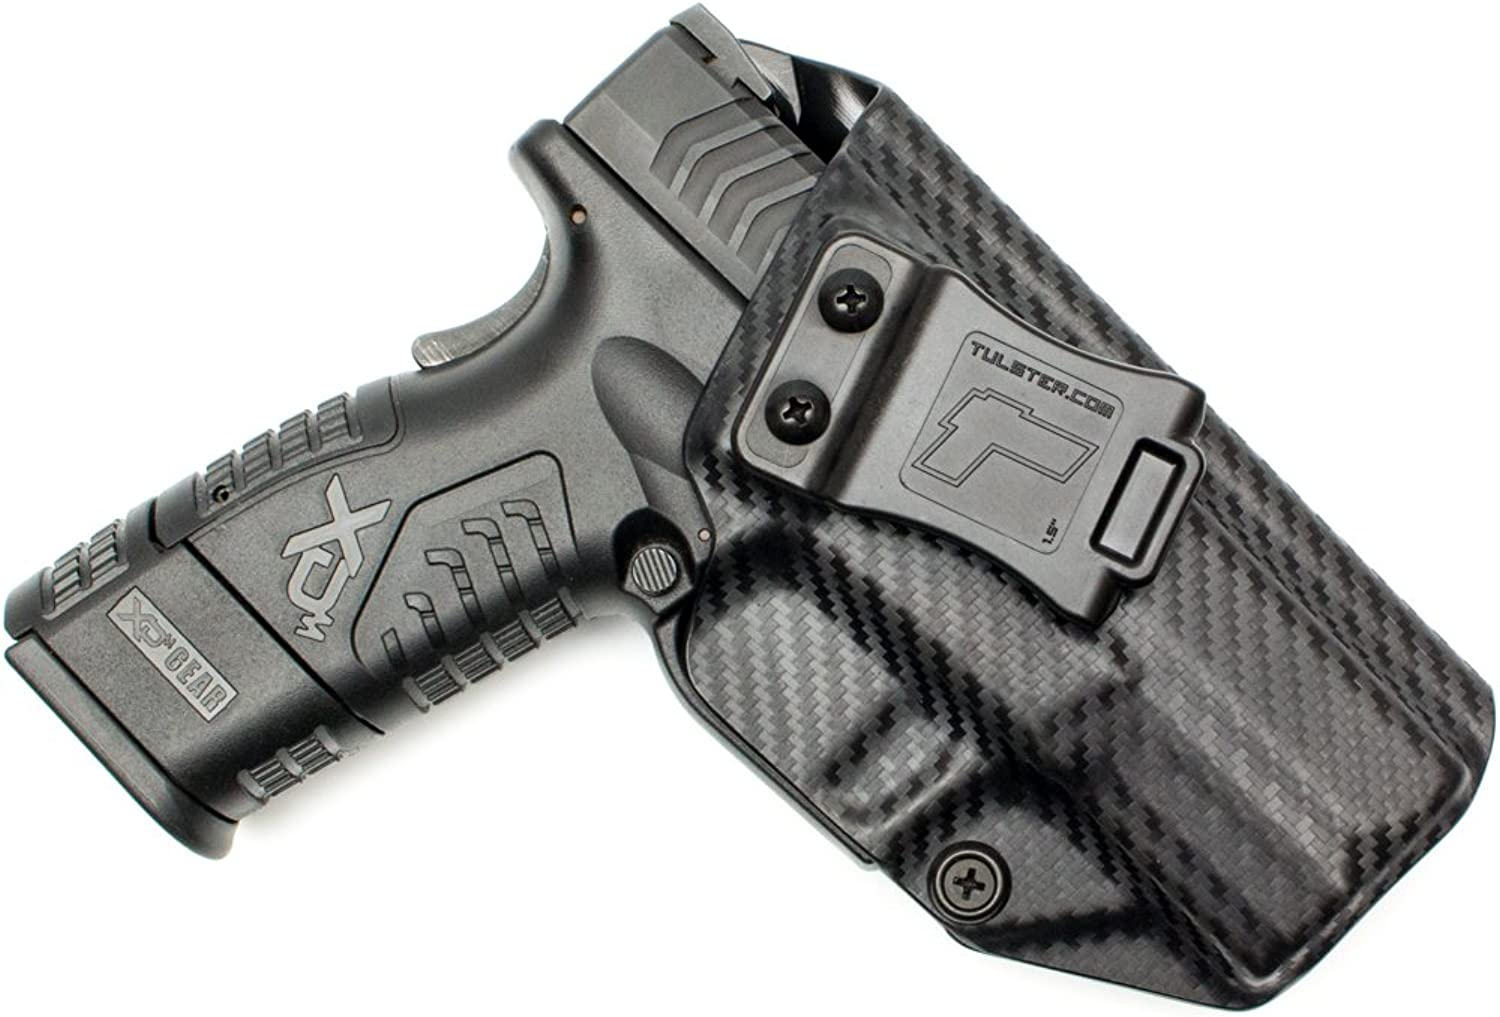 Tulster Springfield Armory XDM 3.8  9mm .40 Holster IWB Profile HolsterRight Hand